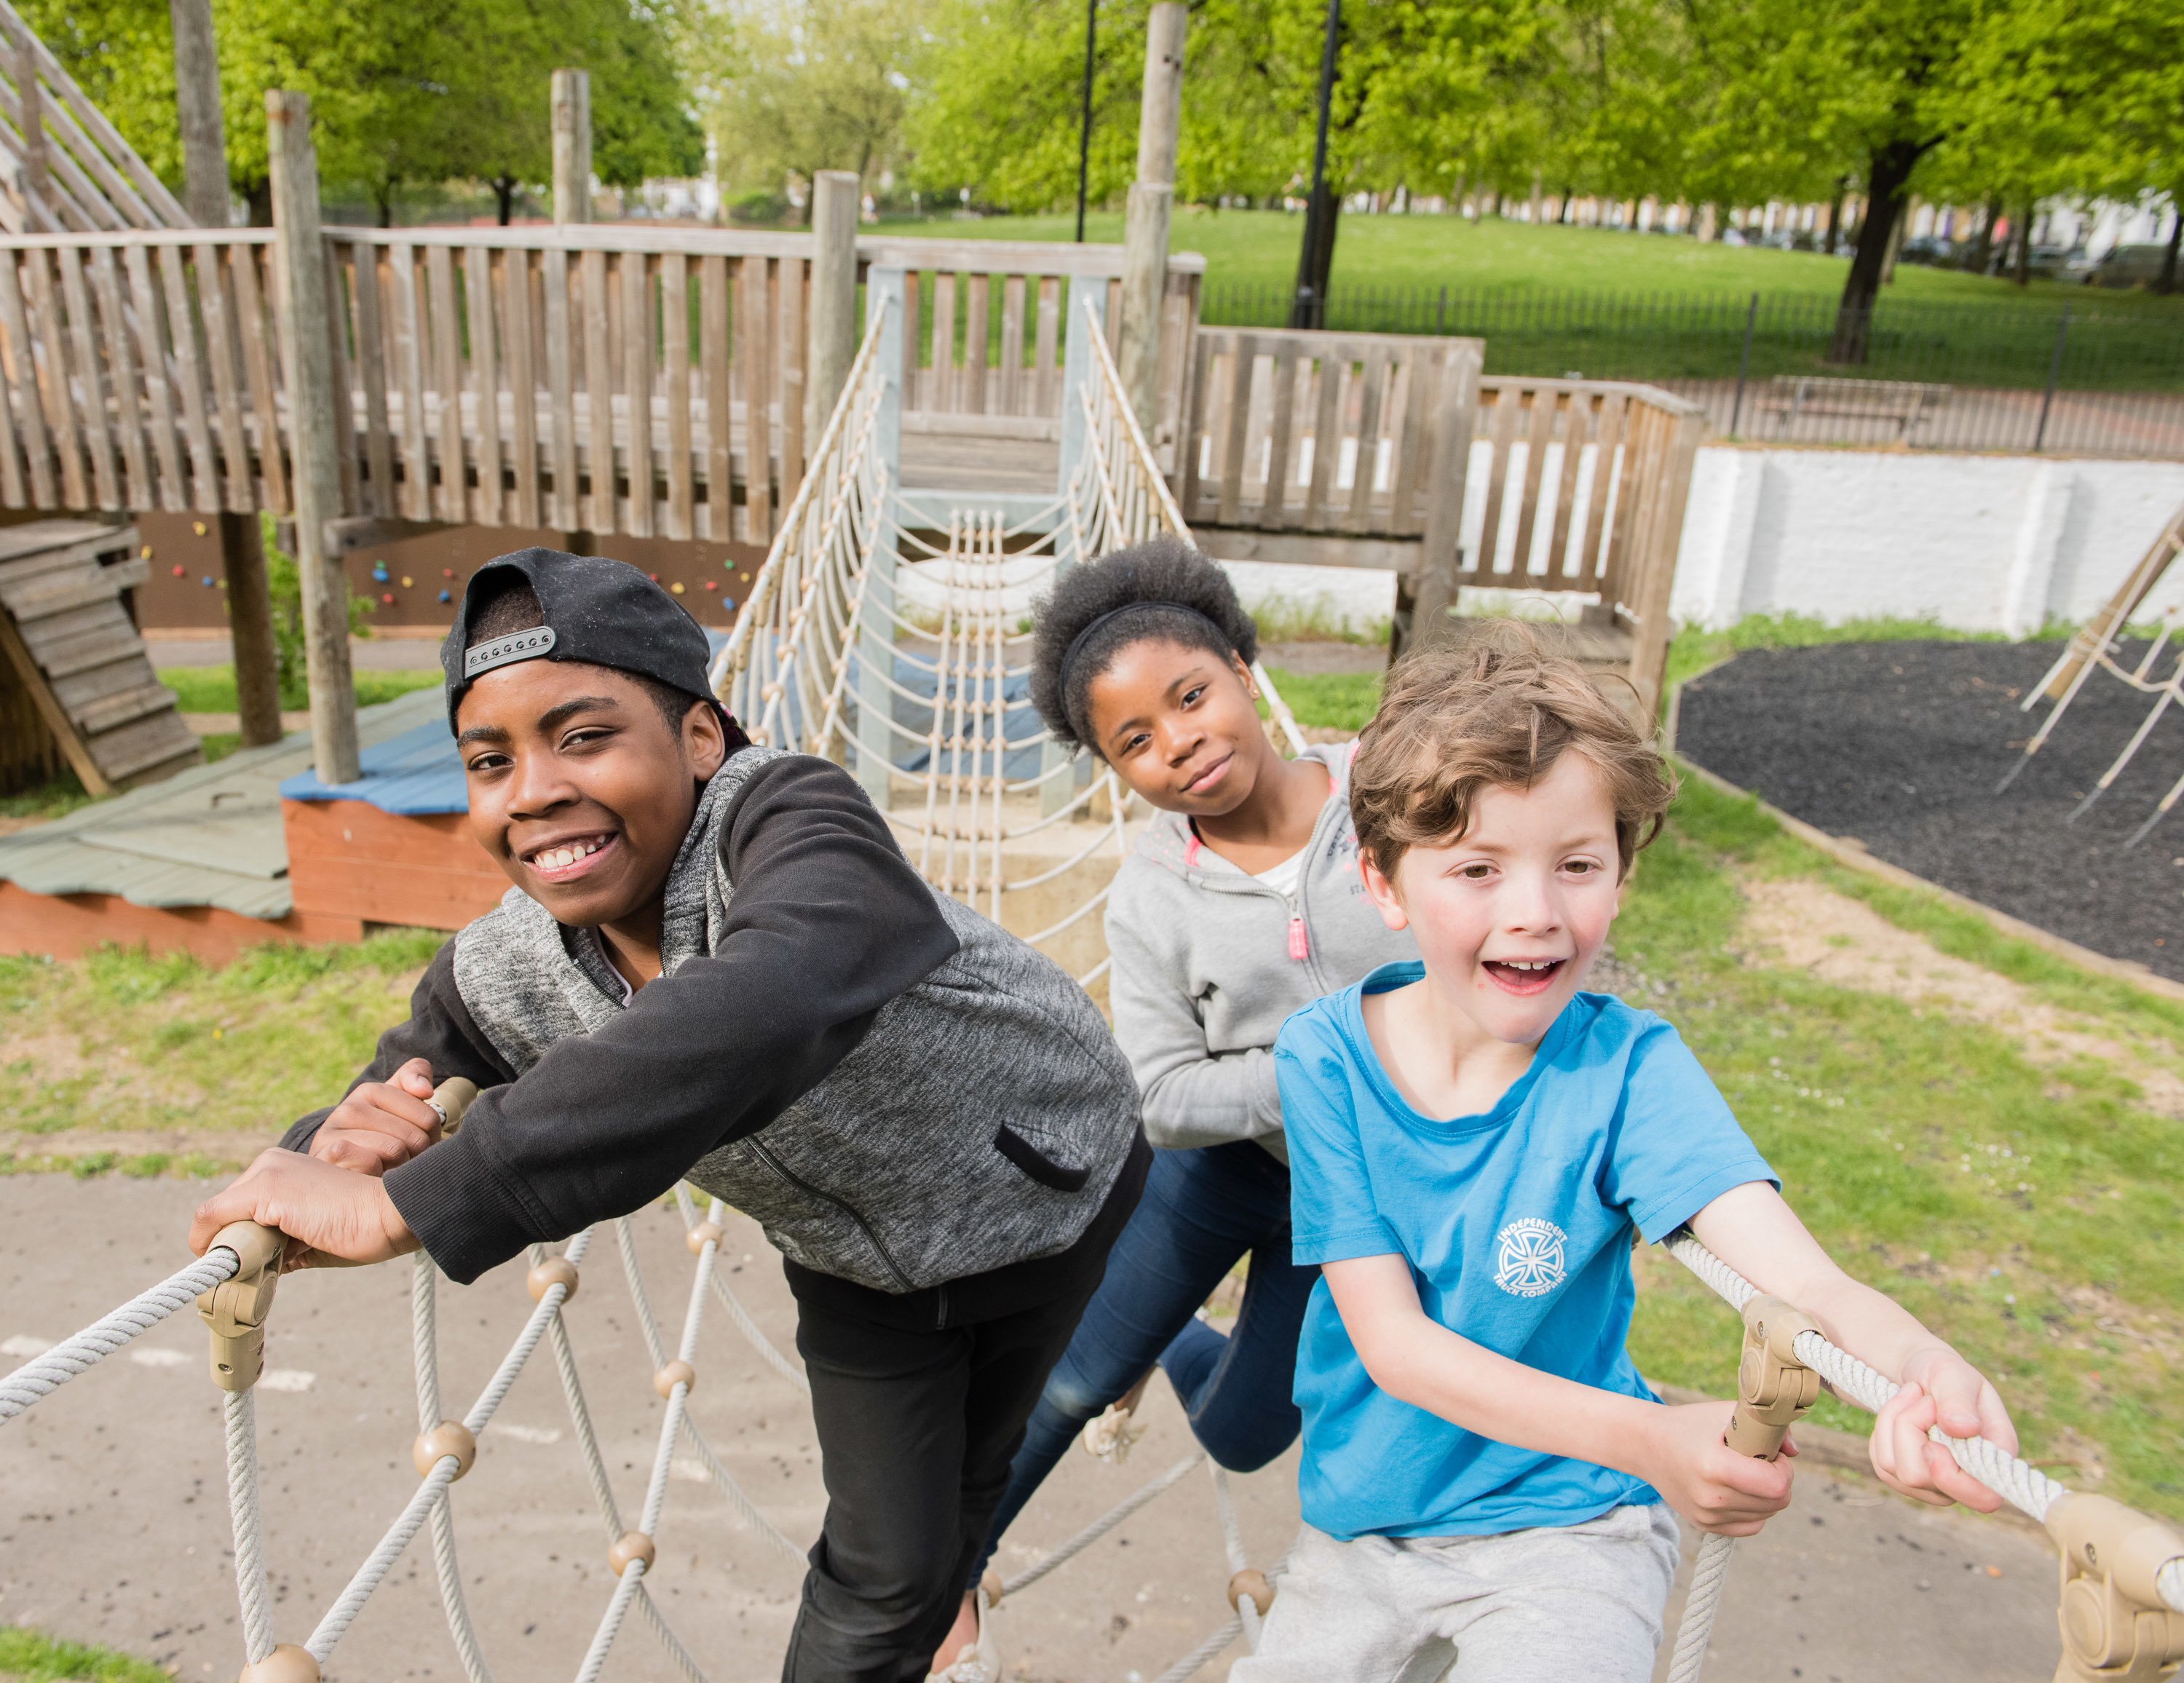 Burn some energy at Barnard Park Adventure Playground